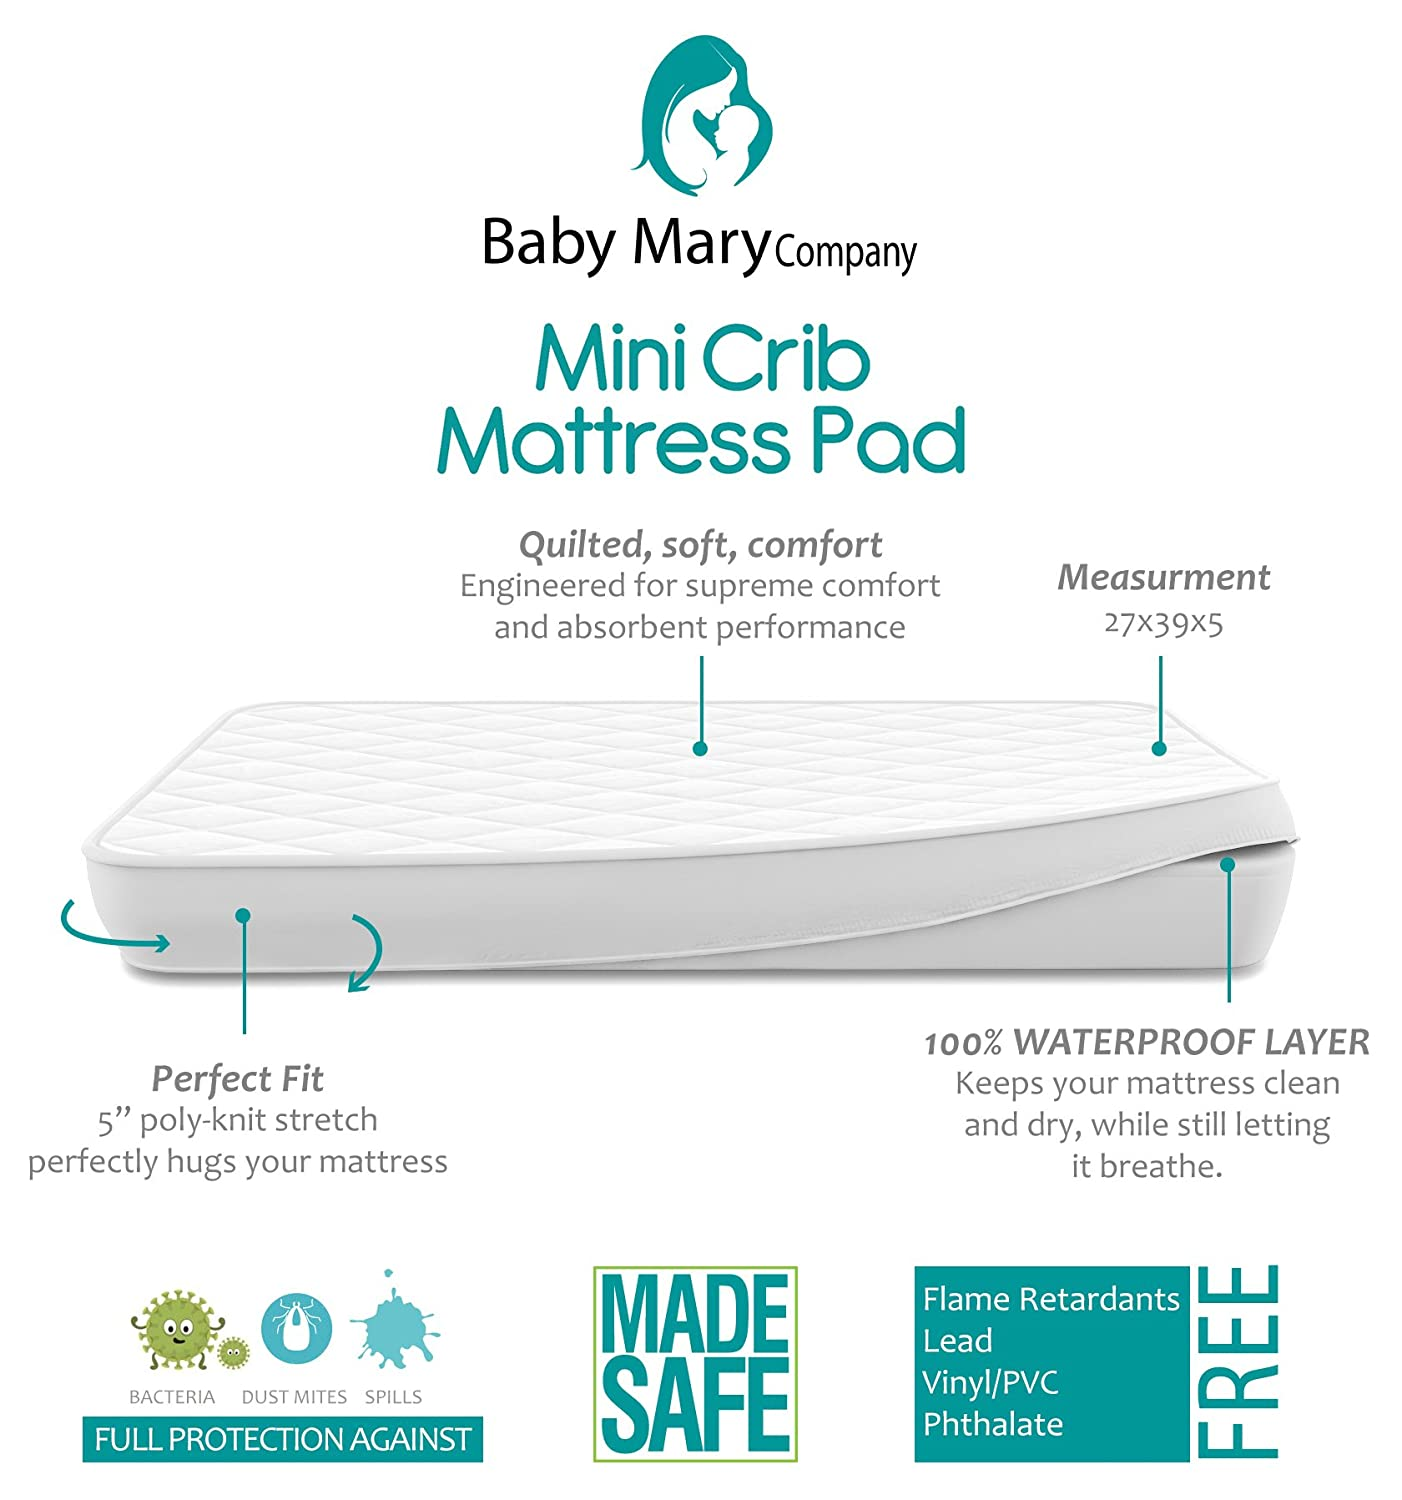 Amazon.com : BabyMaryCo Pack N Play Waterproof Crib Mattress Pad Cover FITS  ALL Mini&Foldable Mattresses Portable Cribs Dryer Safe & Hypoallergenic  Soft ...